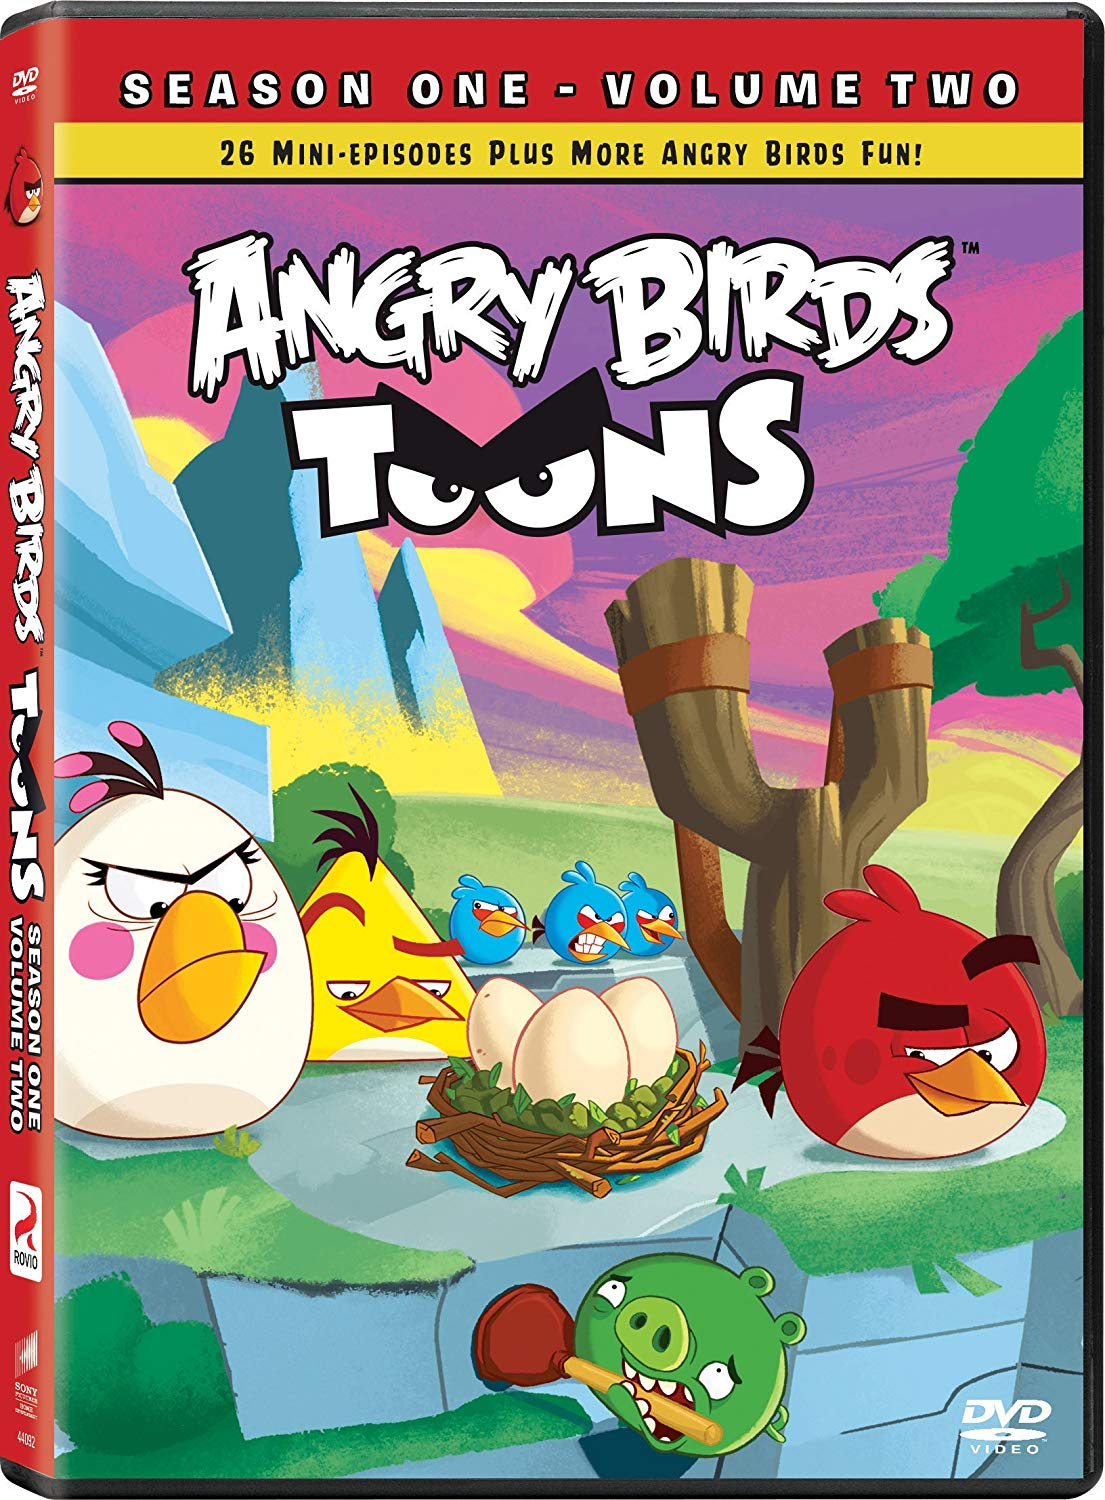 Angry Birds Toons: The First Season, Volume Two [DVD]